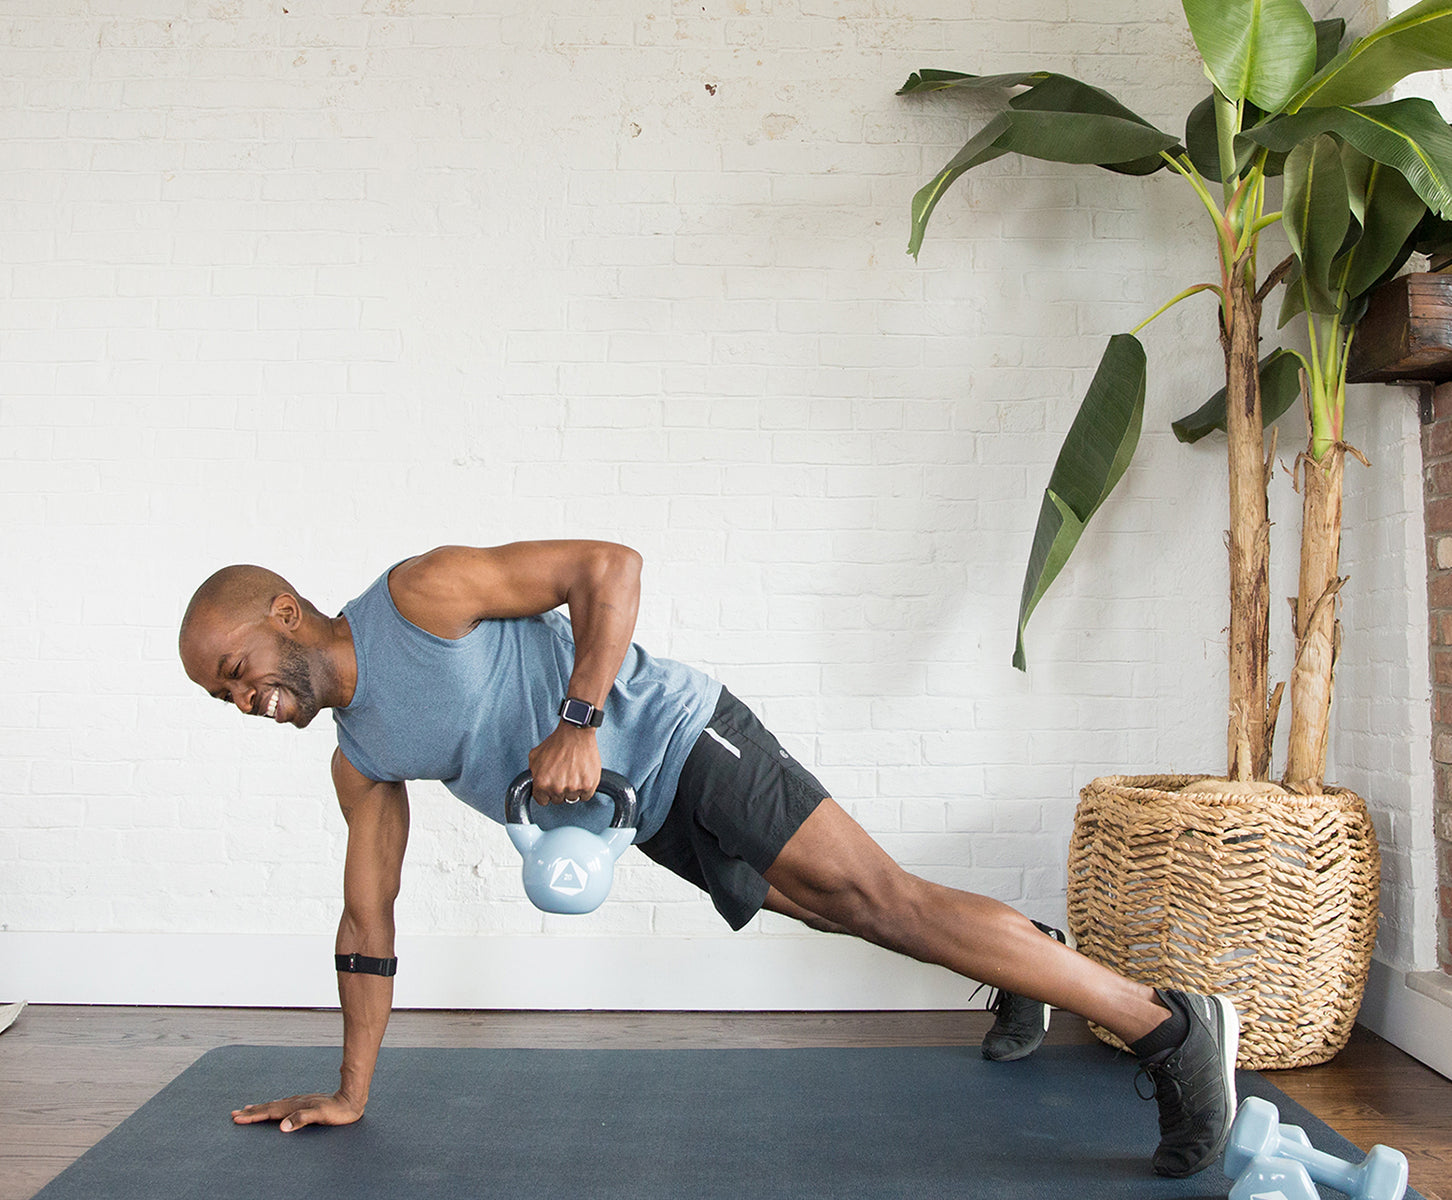 Man working out on floor with kettlebell